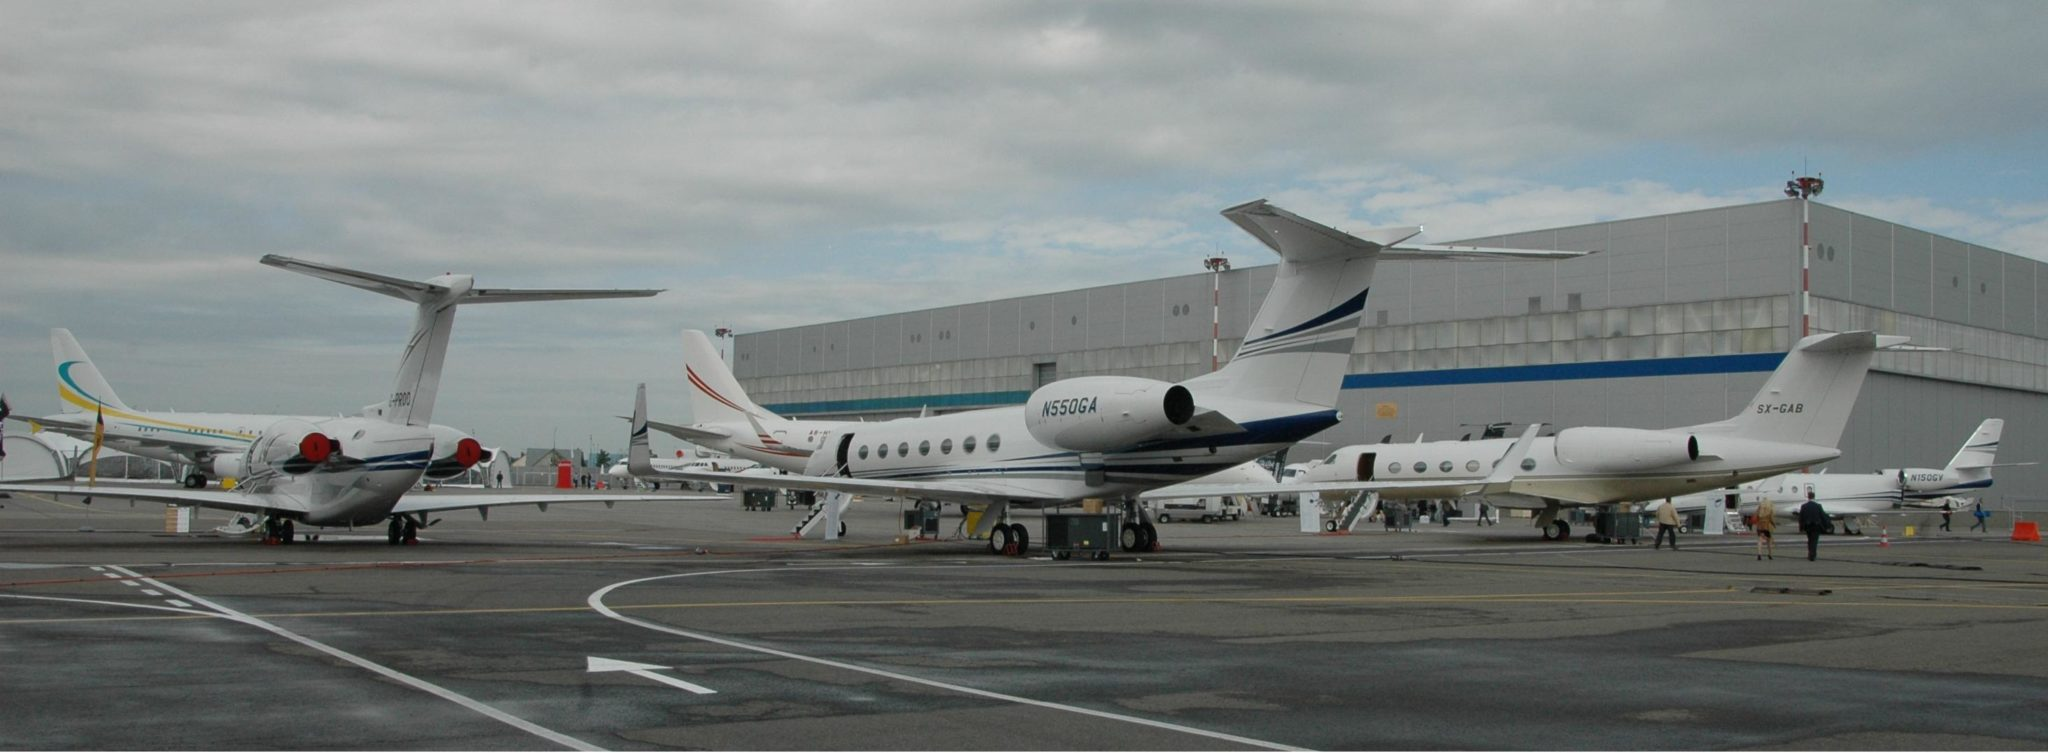 Phenom 300 cockpit phenom executive jet line leaders of innovation - Jetoptions Charters Private Jets To Moscow